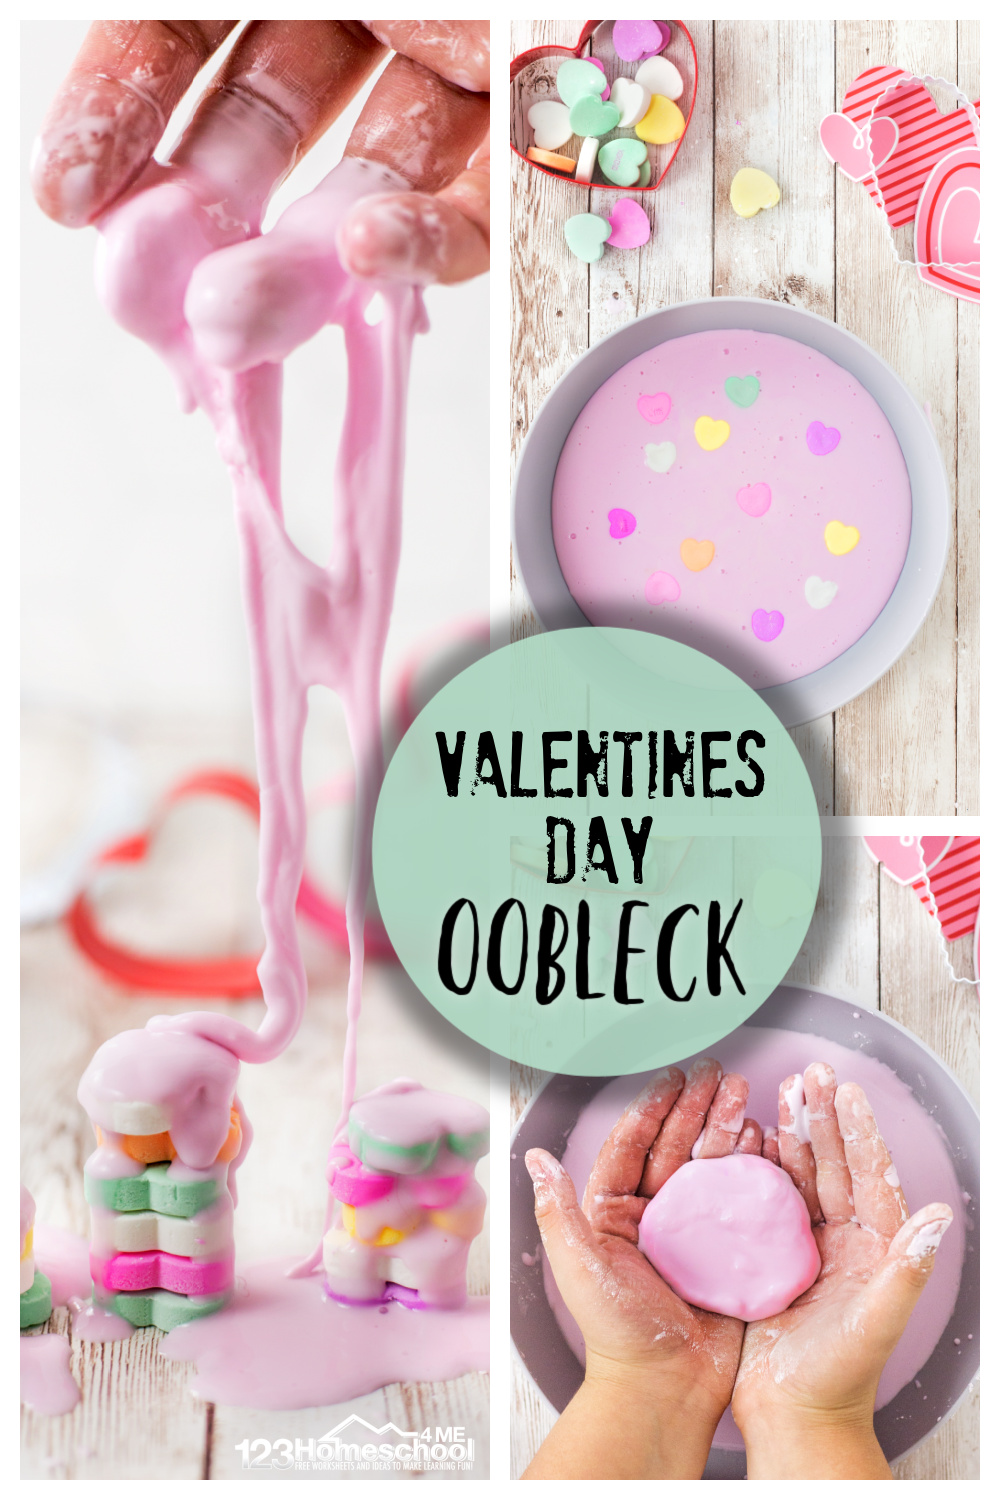 hight resolution of Valentines Day Oobleck - Science Play Activity for Kids